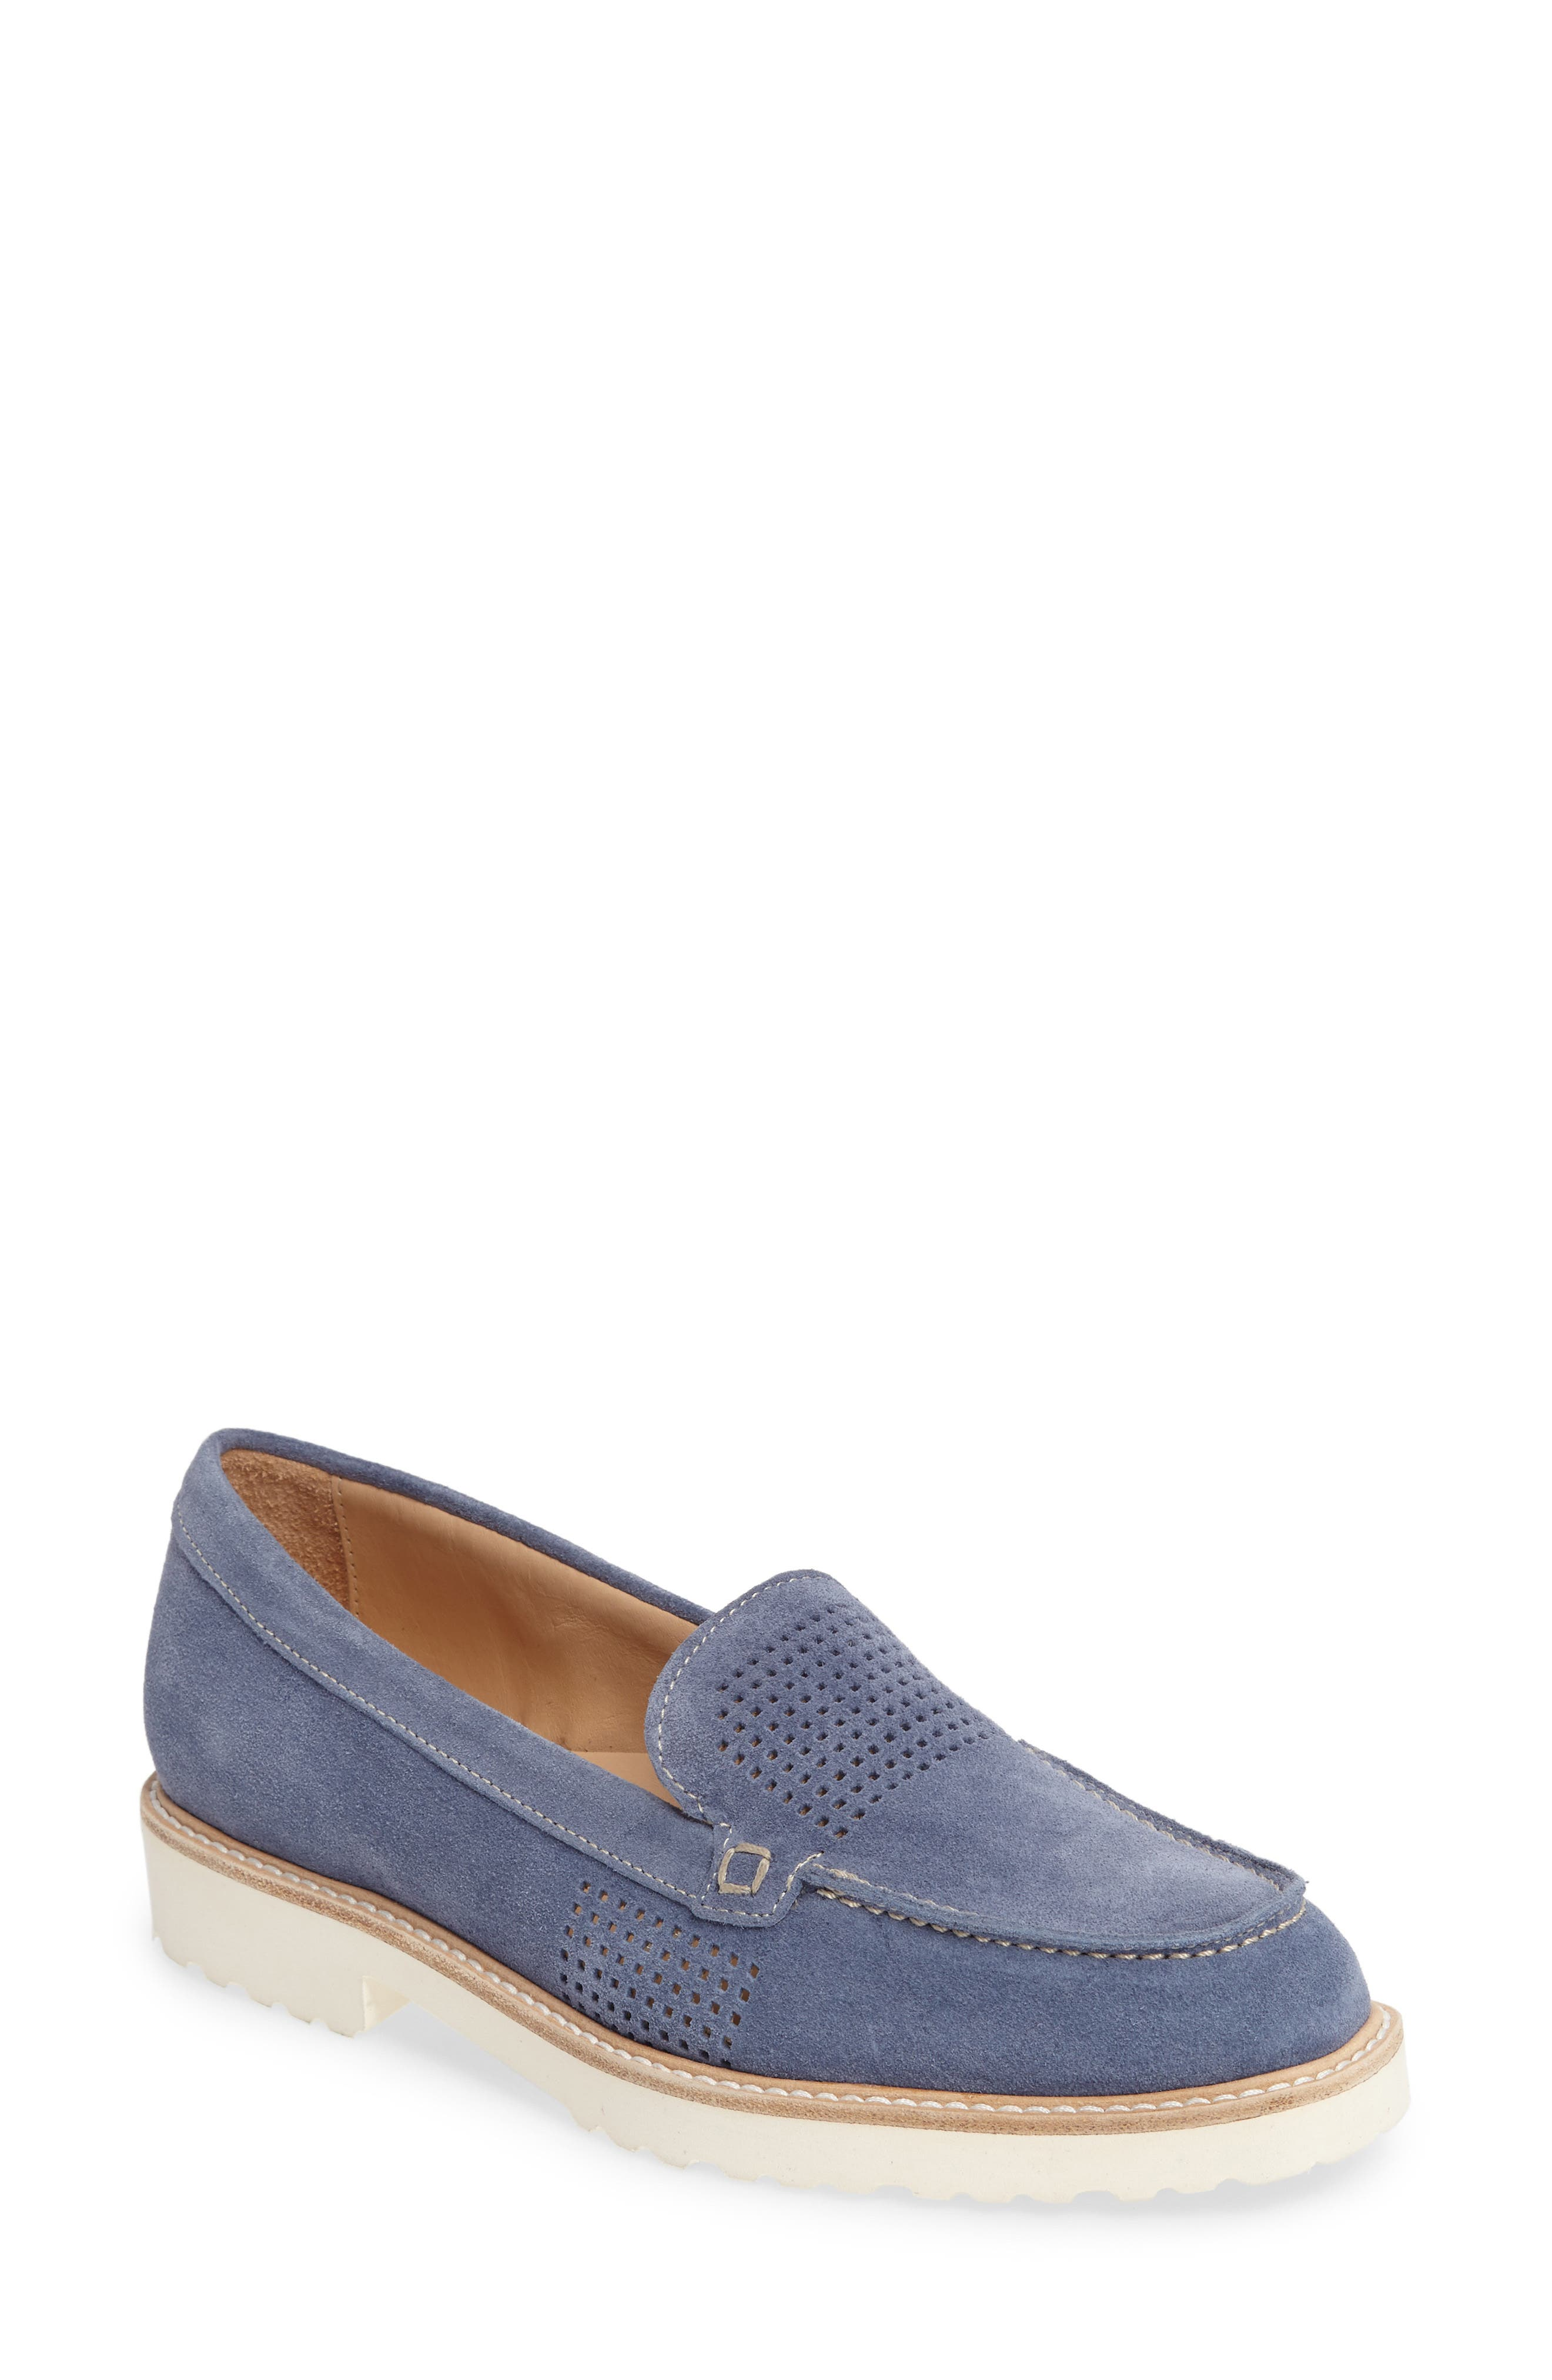 Alternate Image 1 Selected - Ron White Wazzy Loafer (Women)